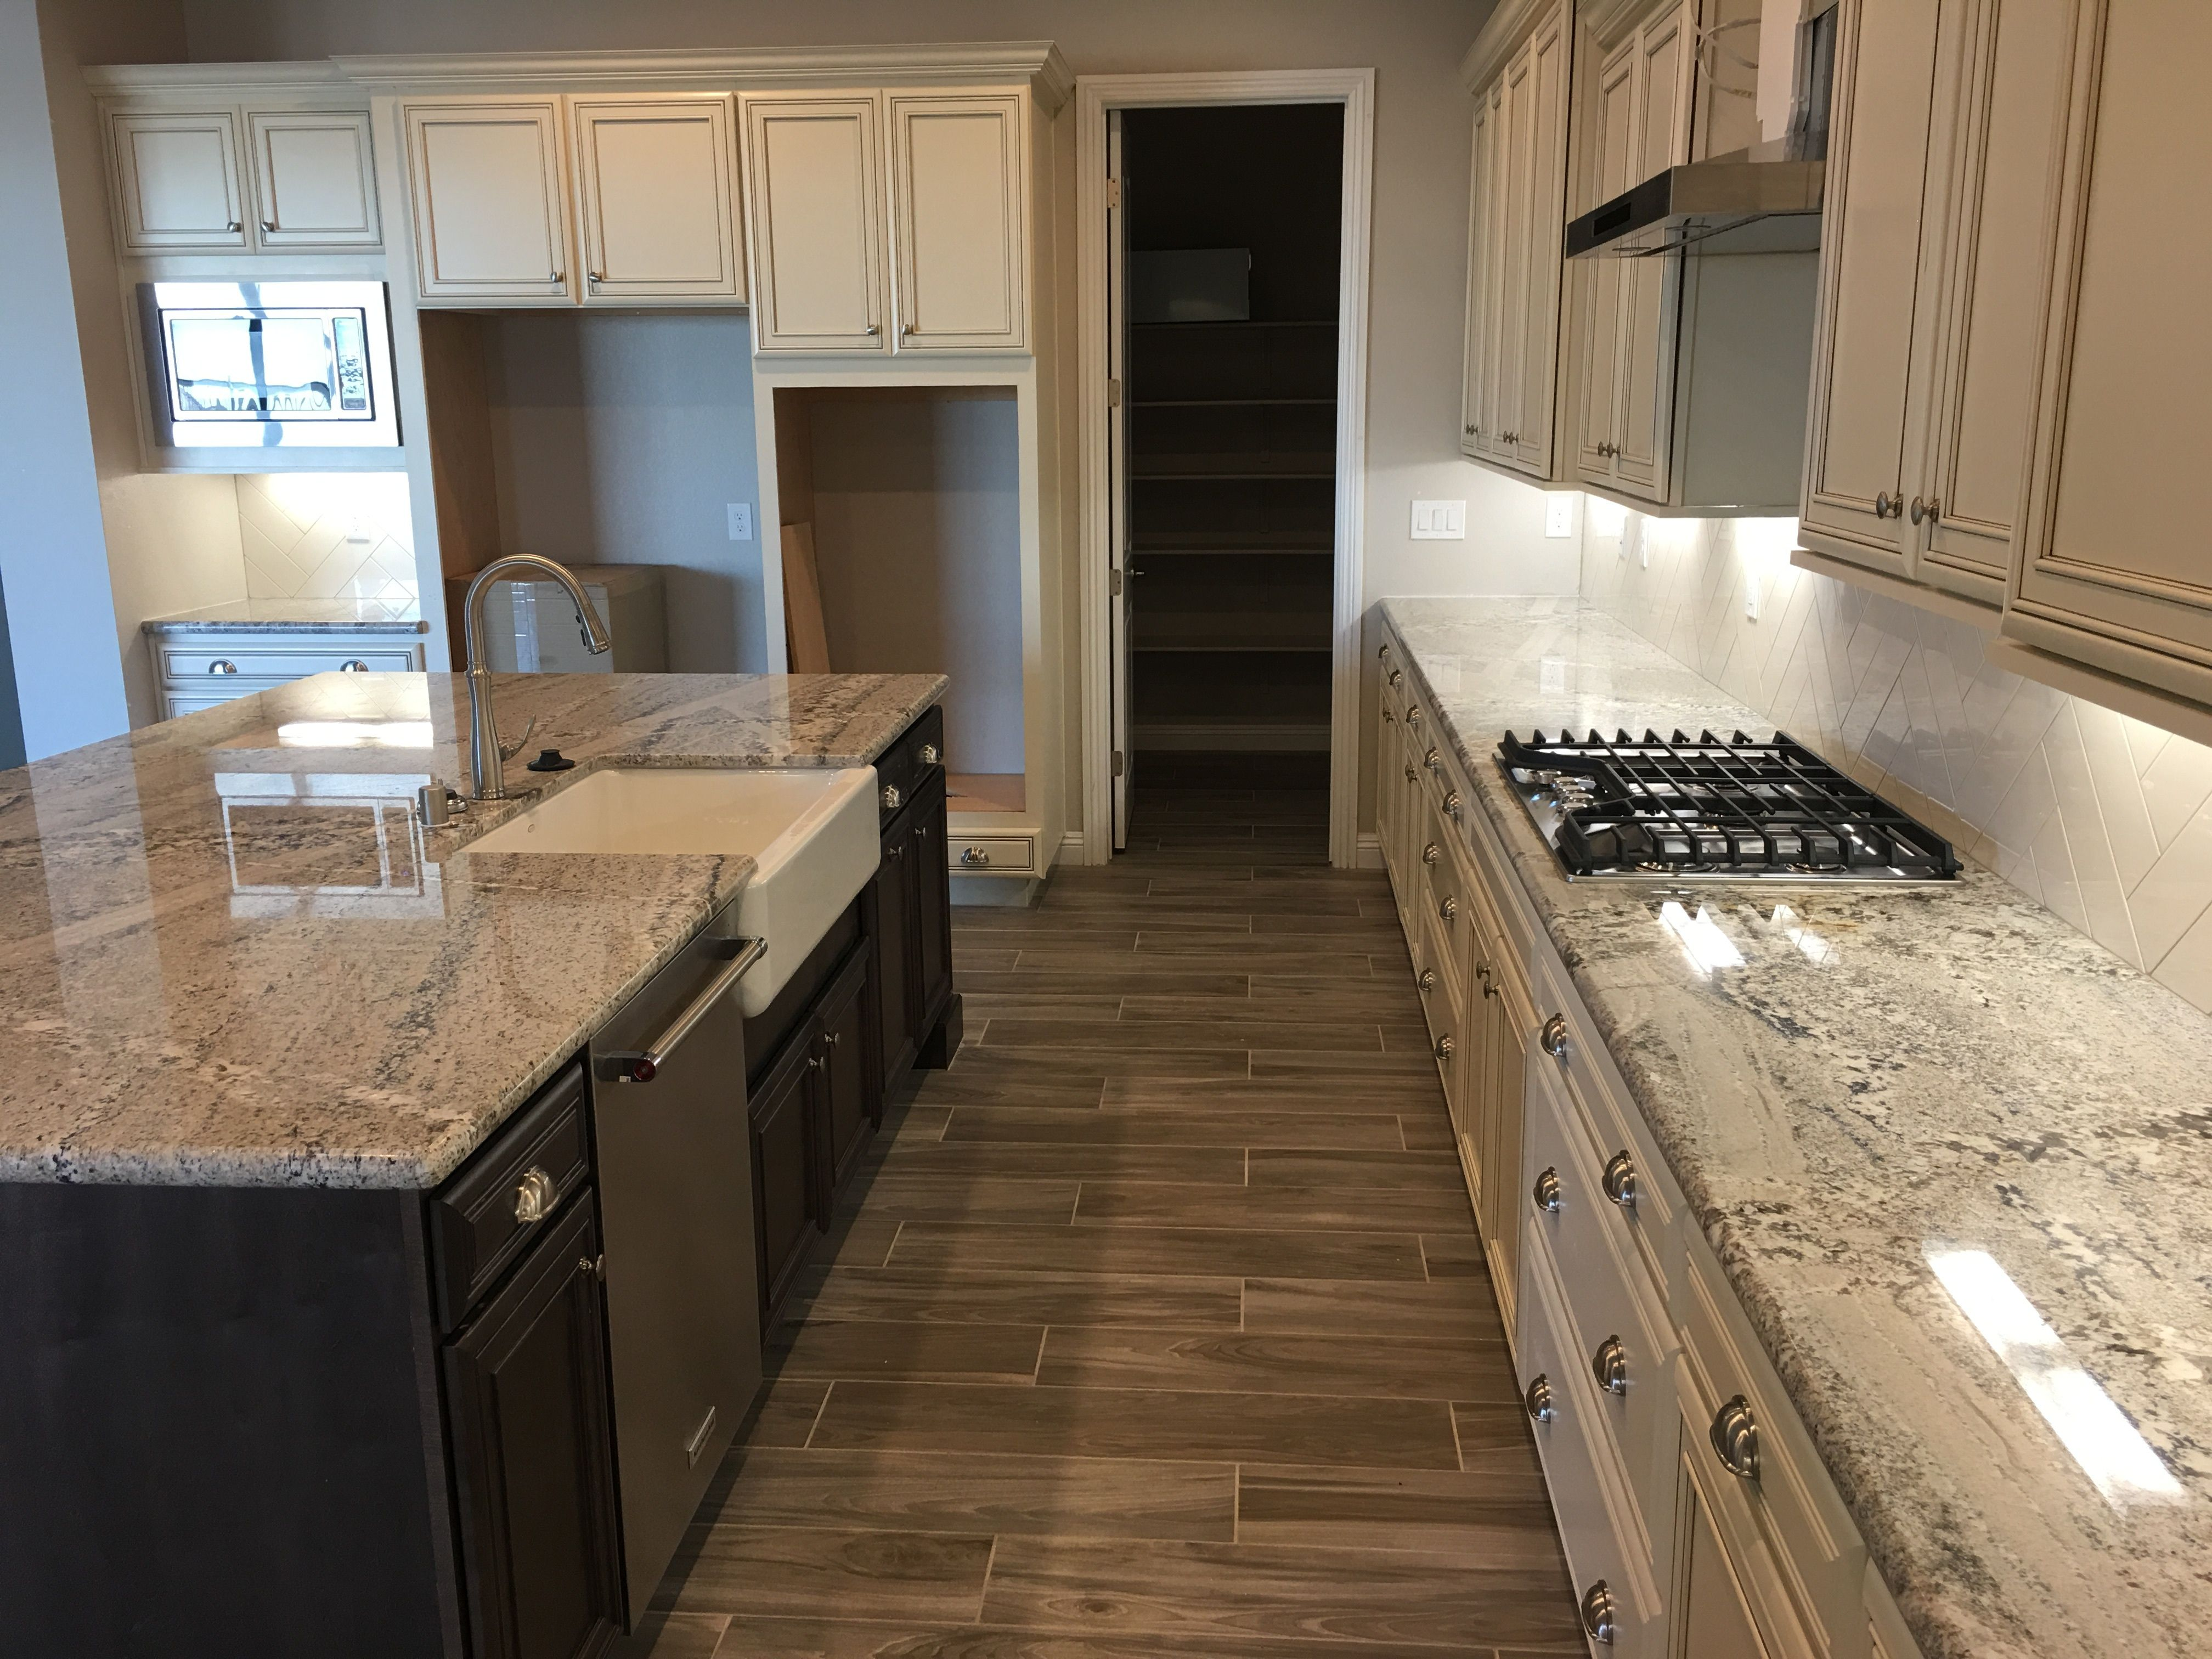 Look What Monte Cristo Granite Looks Like Installed In A Custom Home Here In Las Vegas Nv Another Happy Azt Customer Granite Arizona House Kitchen Design